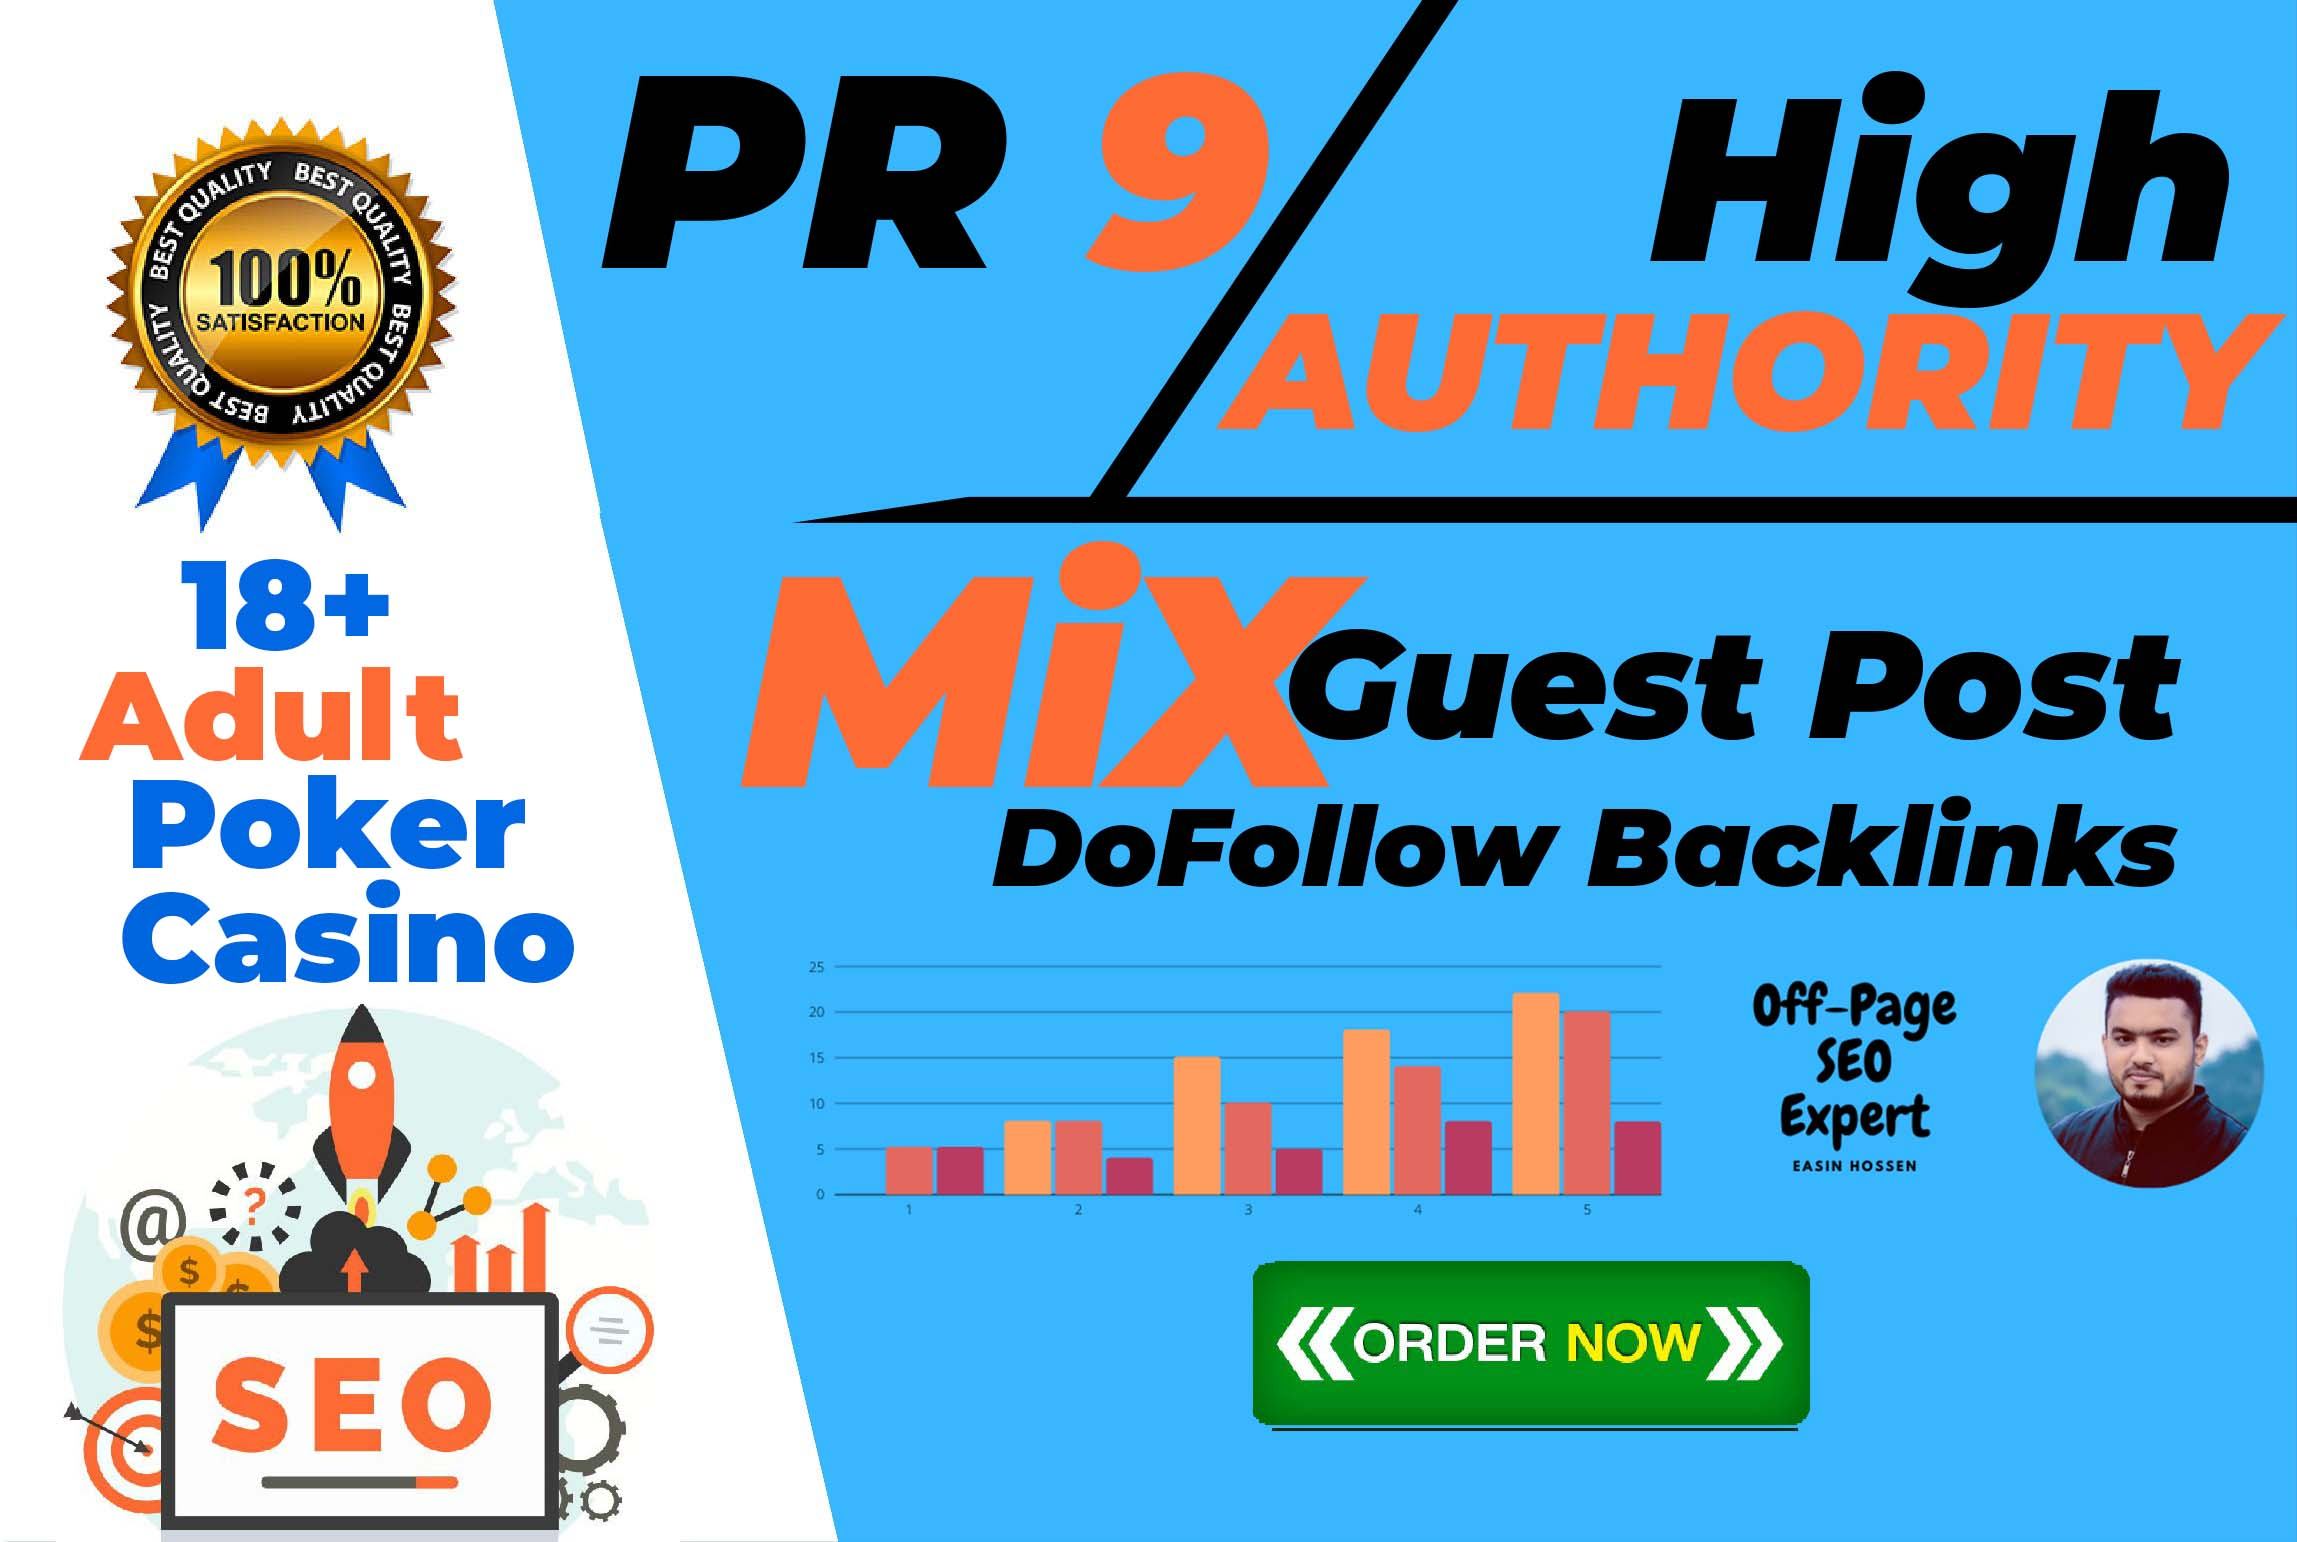 280 PowerLink Authority Backlinks DoFollow Permanent Blog Post